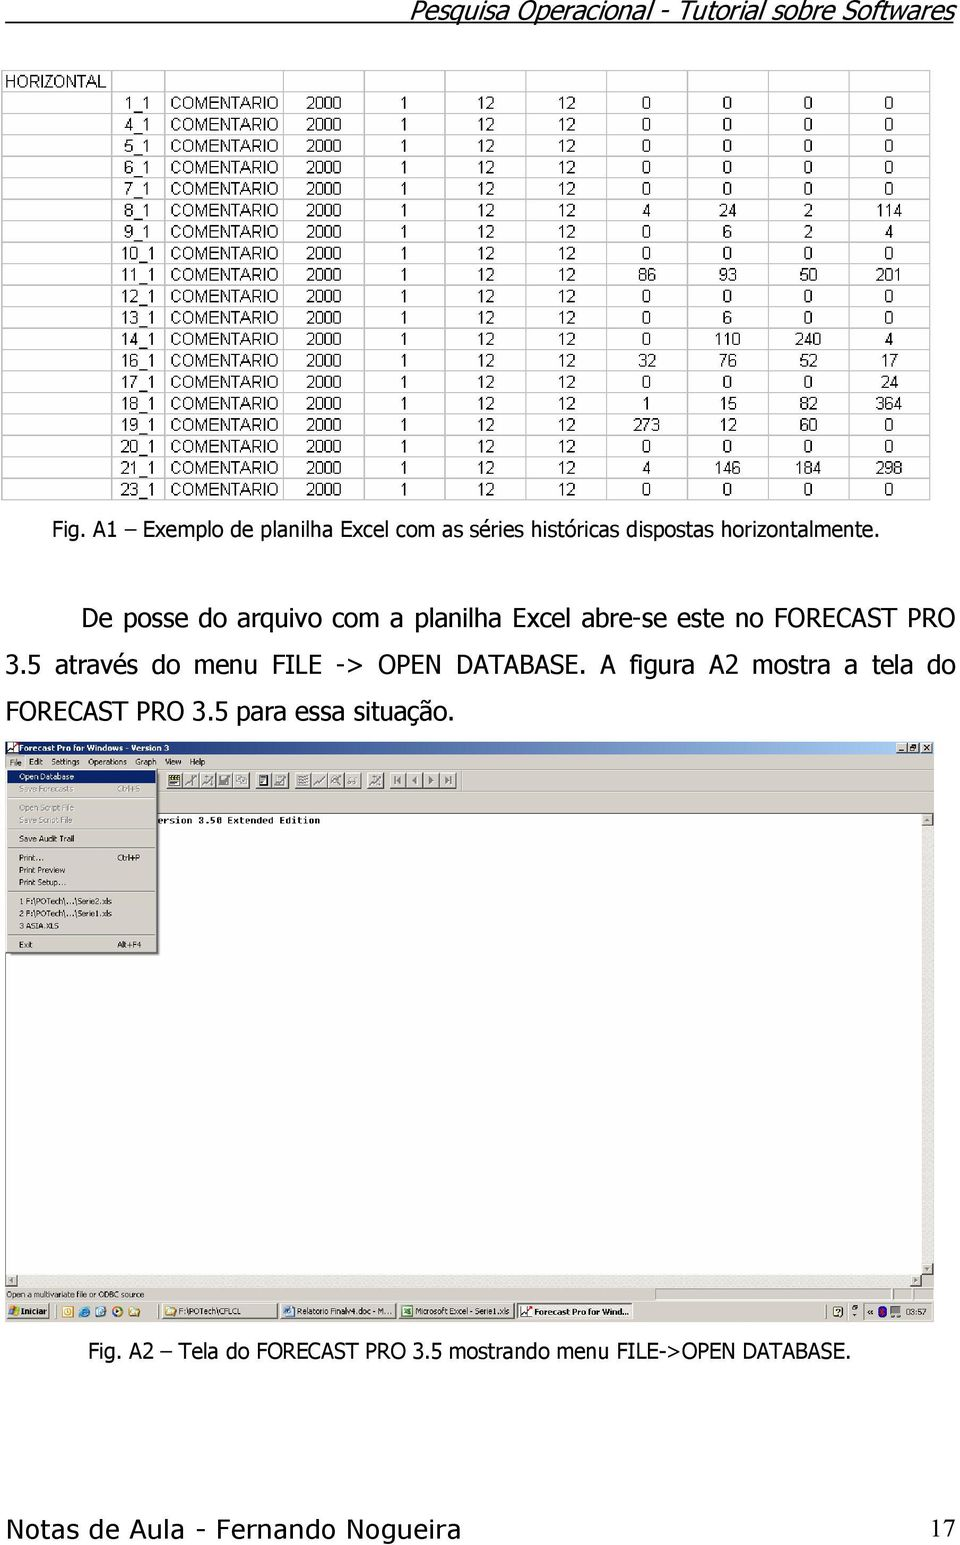 5 através do menu FILE -> OPEN DATABASE. A figura A2 mostra a tela do FORECAST PRO 3.